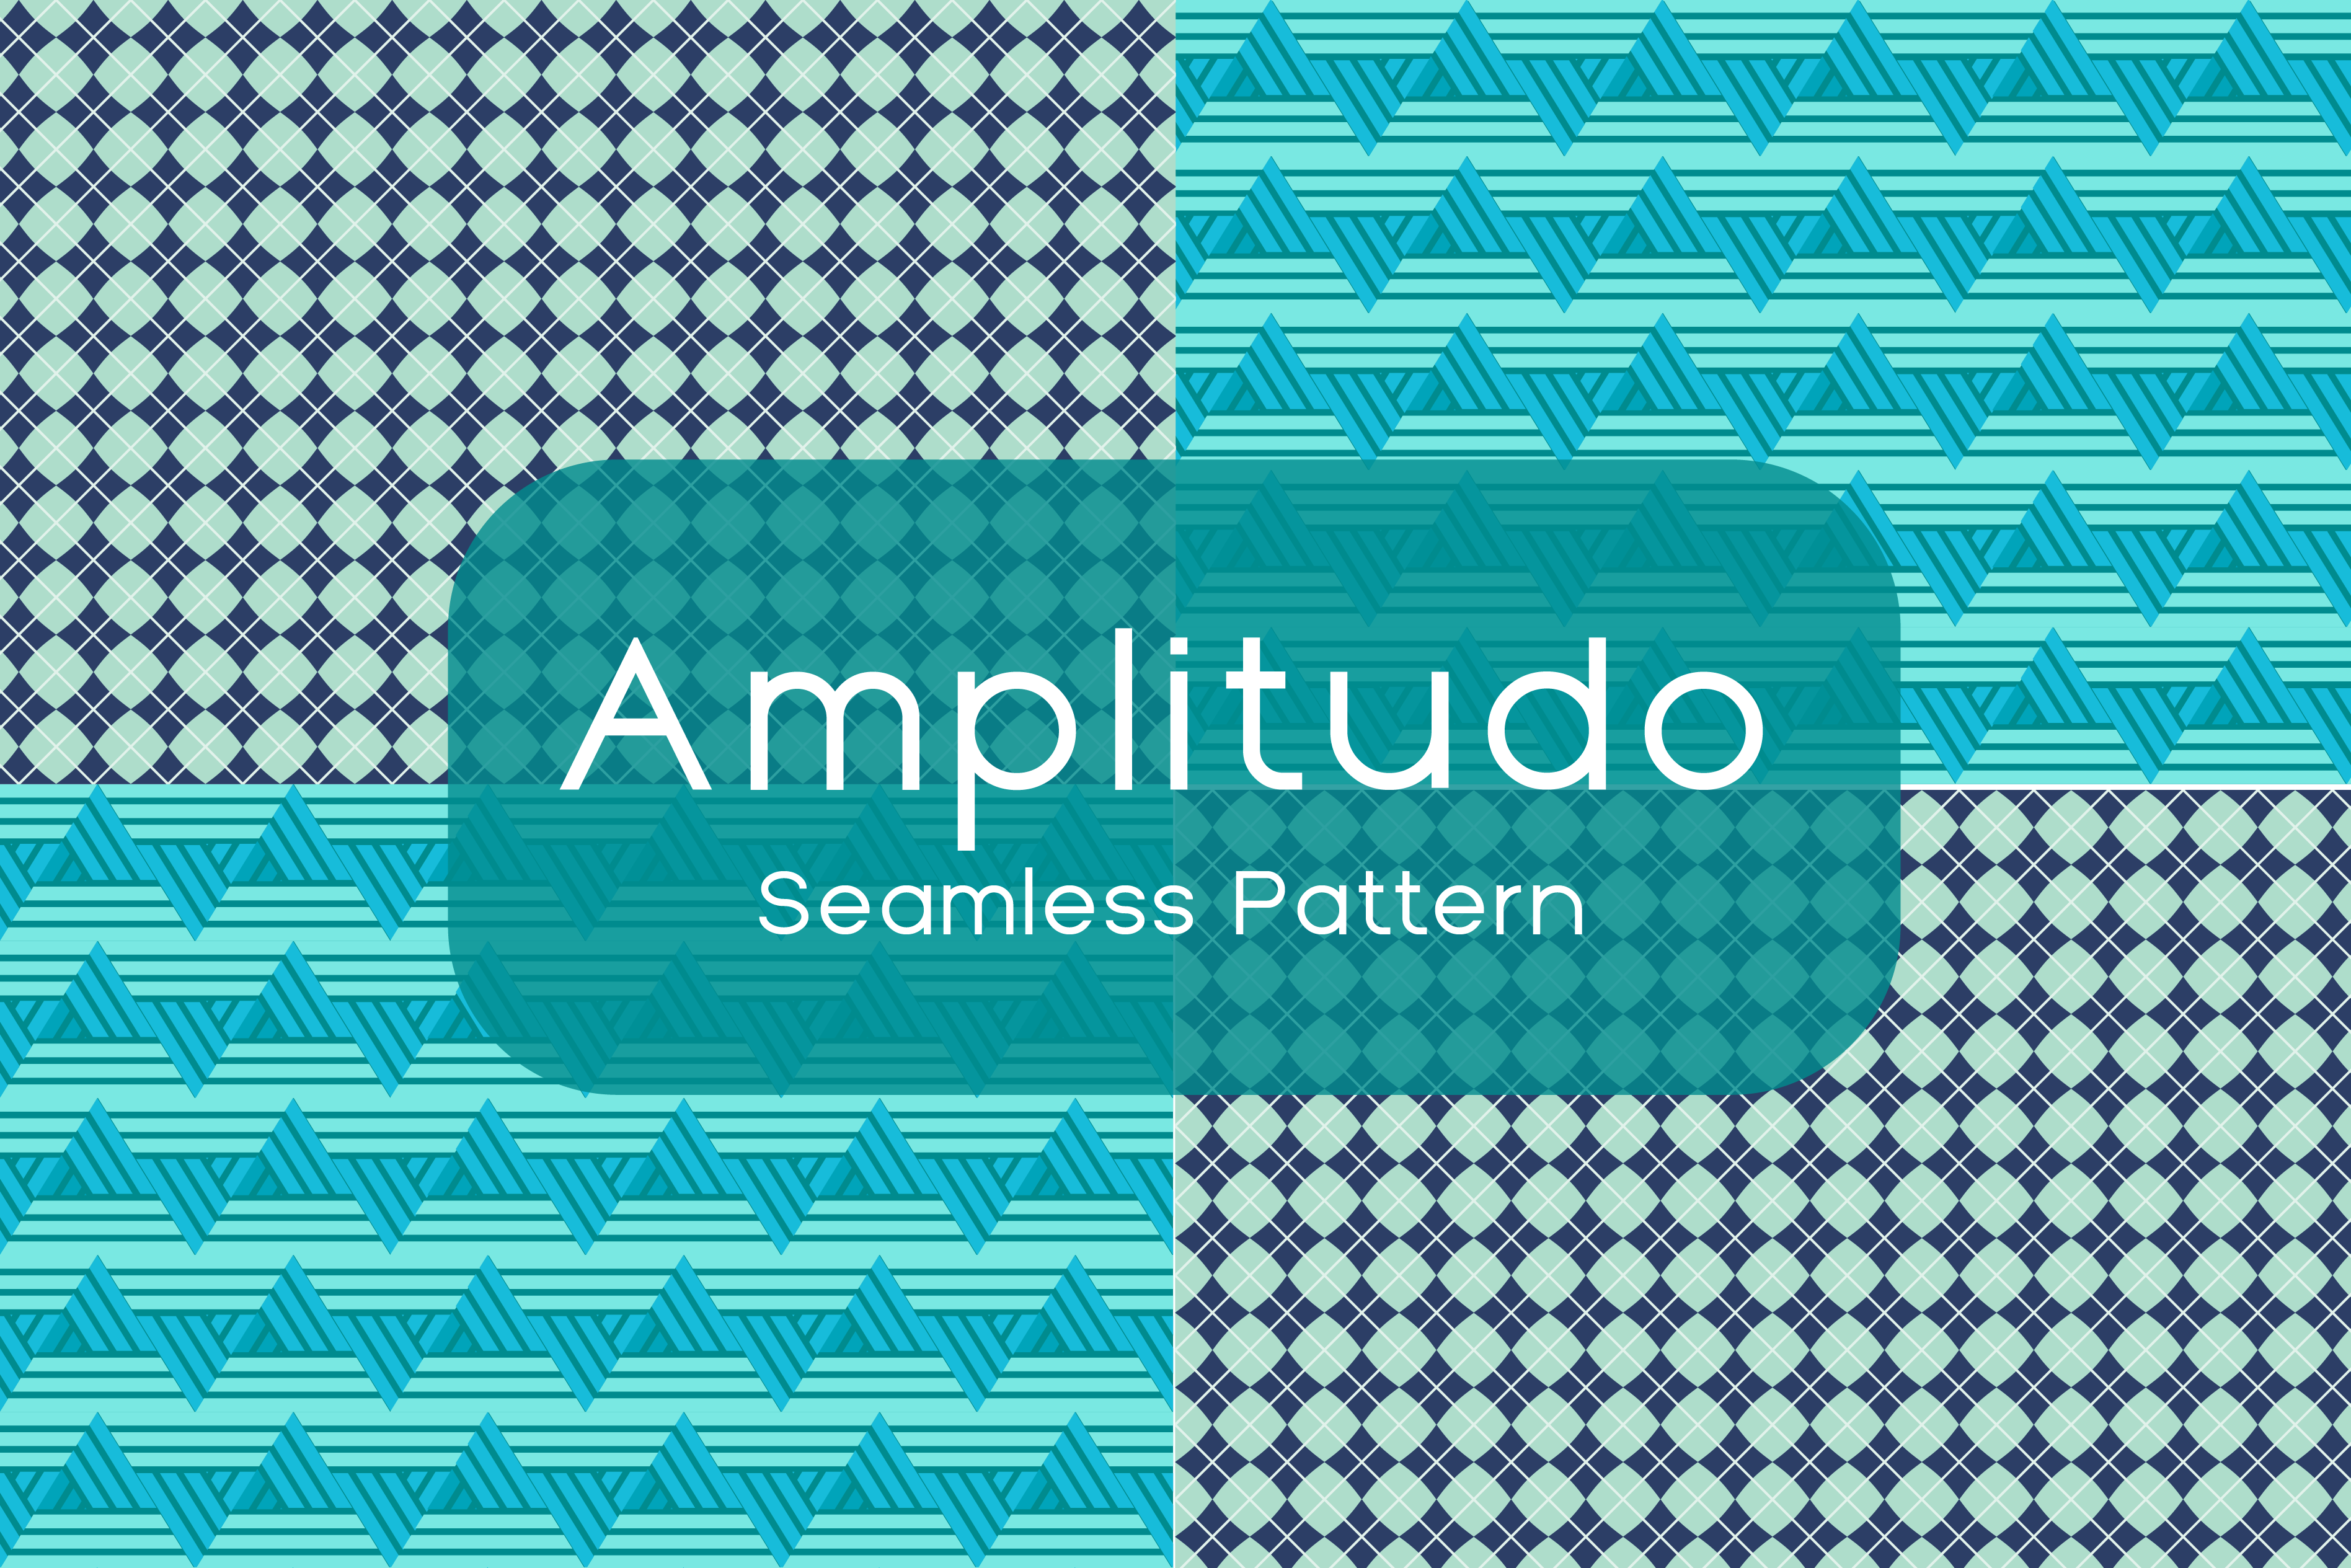 Download Free Amplitudo Seamless Pattern Graphic By Dedisain Creative Fabrica for Cricut Explore, Silhouette and other cutting machines.